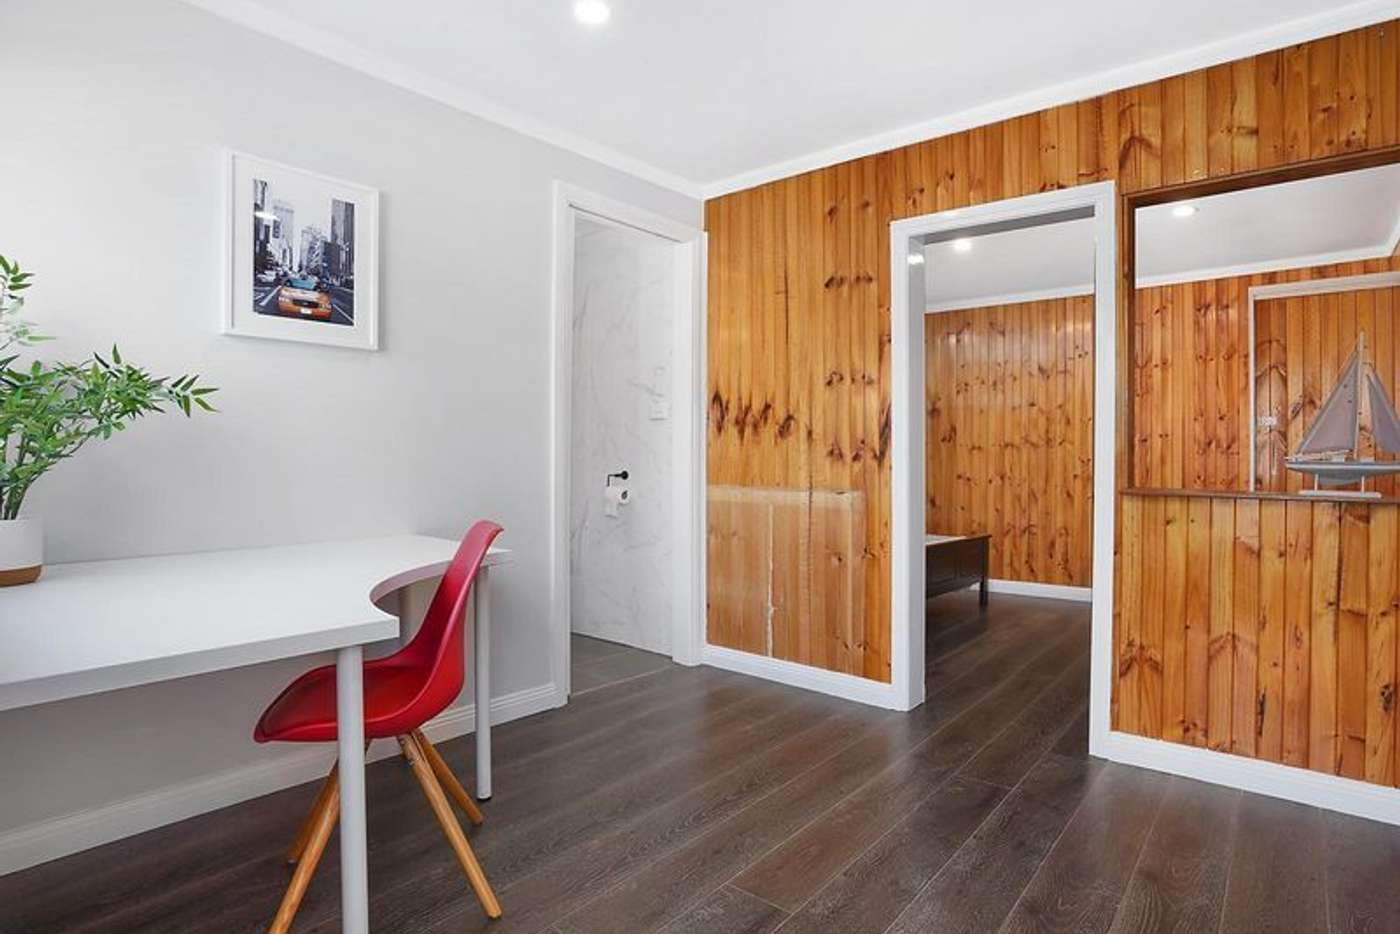 Sixth view of Homely house listing, 8 Kent Street, Yarraville VIC 3013